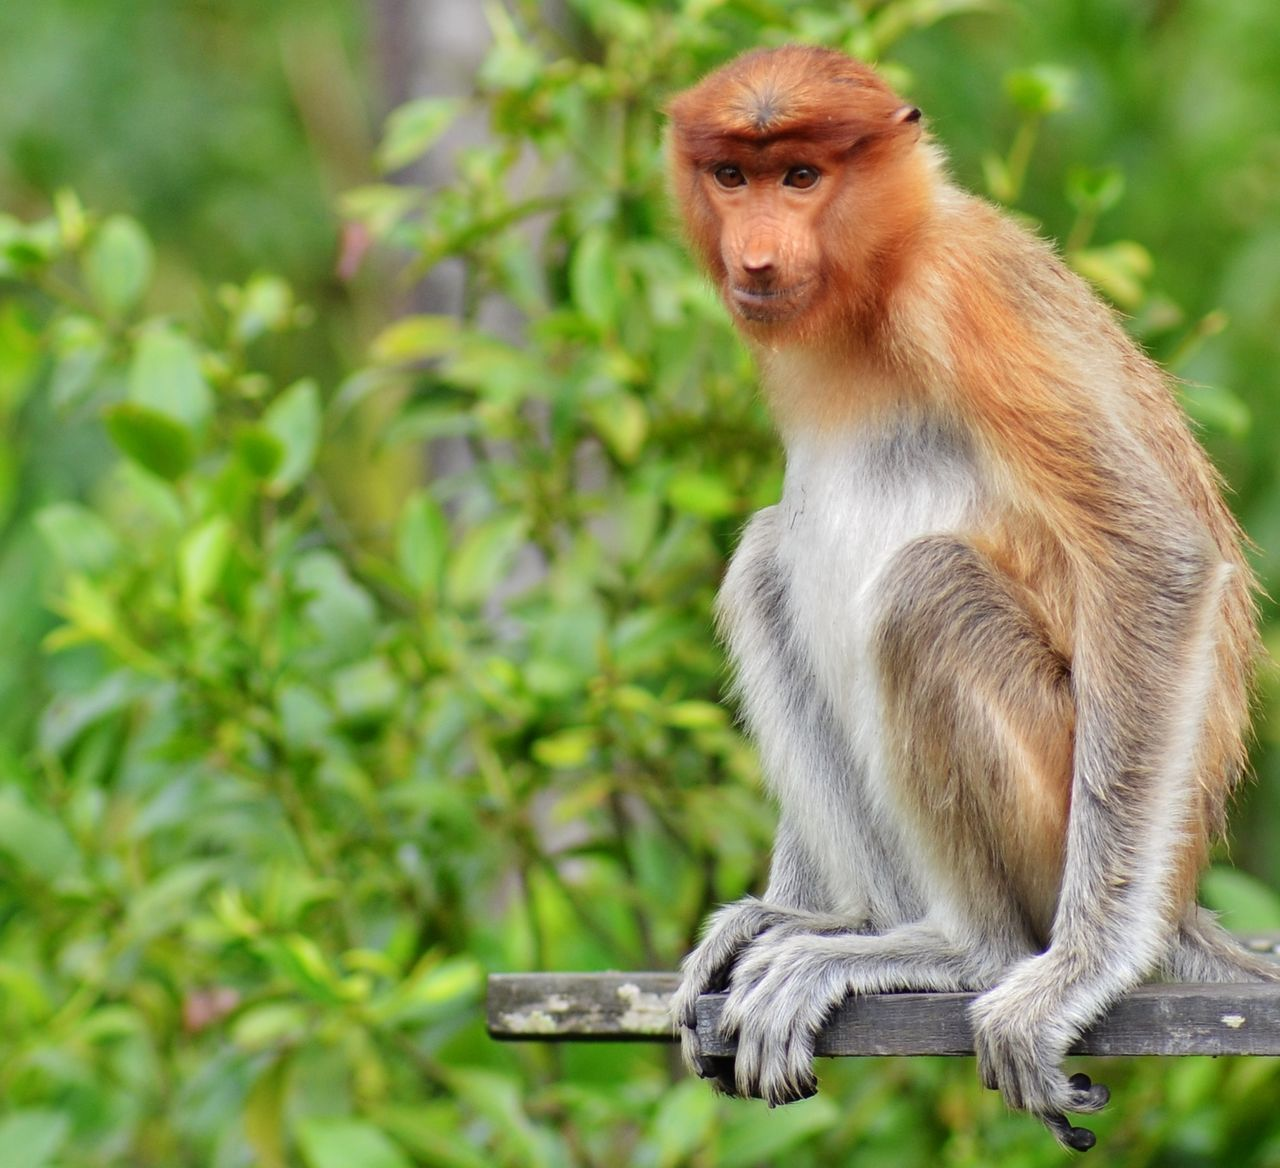 animals in the wild, monkey, animal themes, one animal, animal wildlife, mammal, day, no people, outdoors, focus on foreground, nature, sitting, tree, close-up